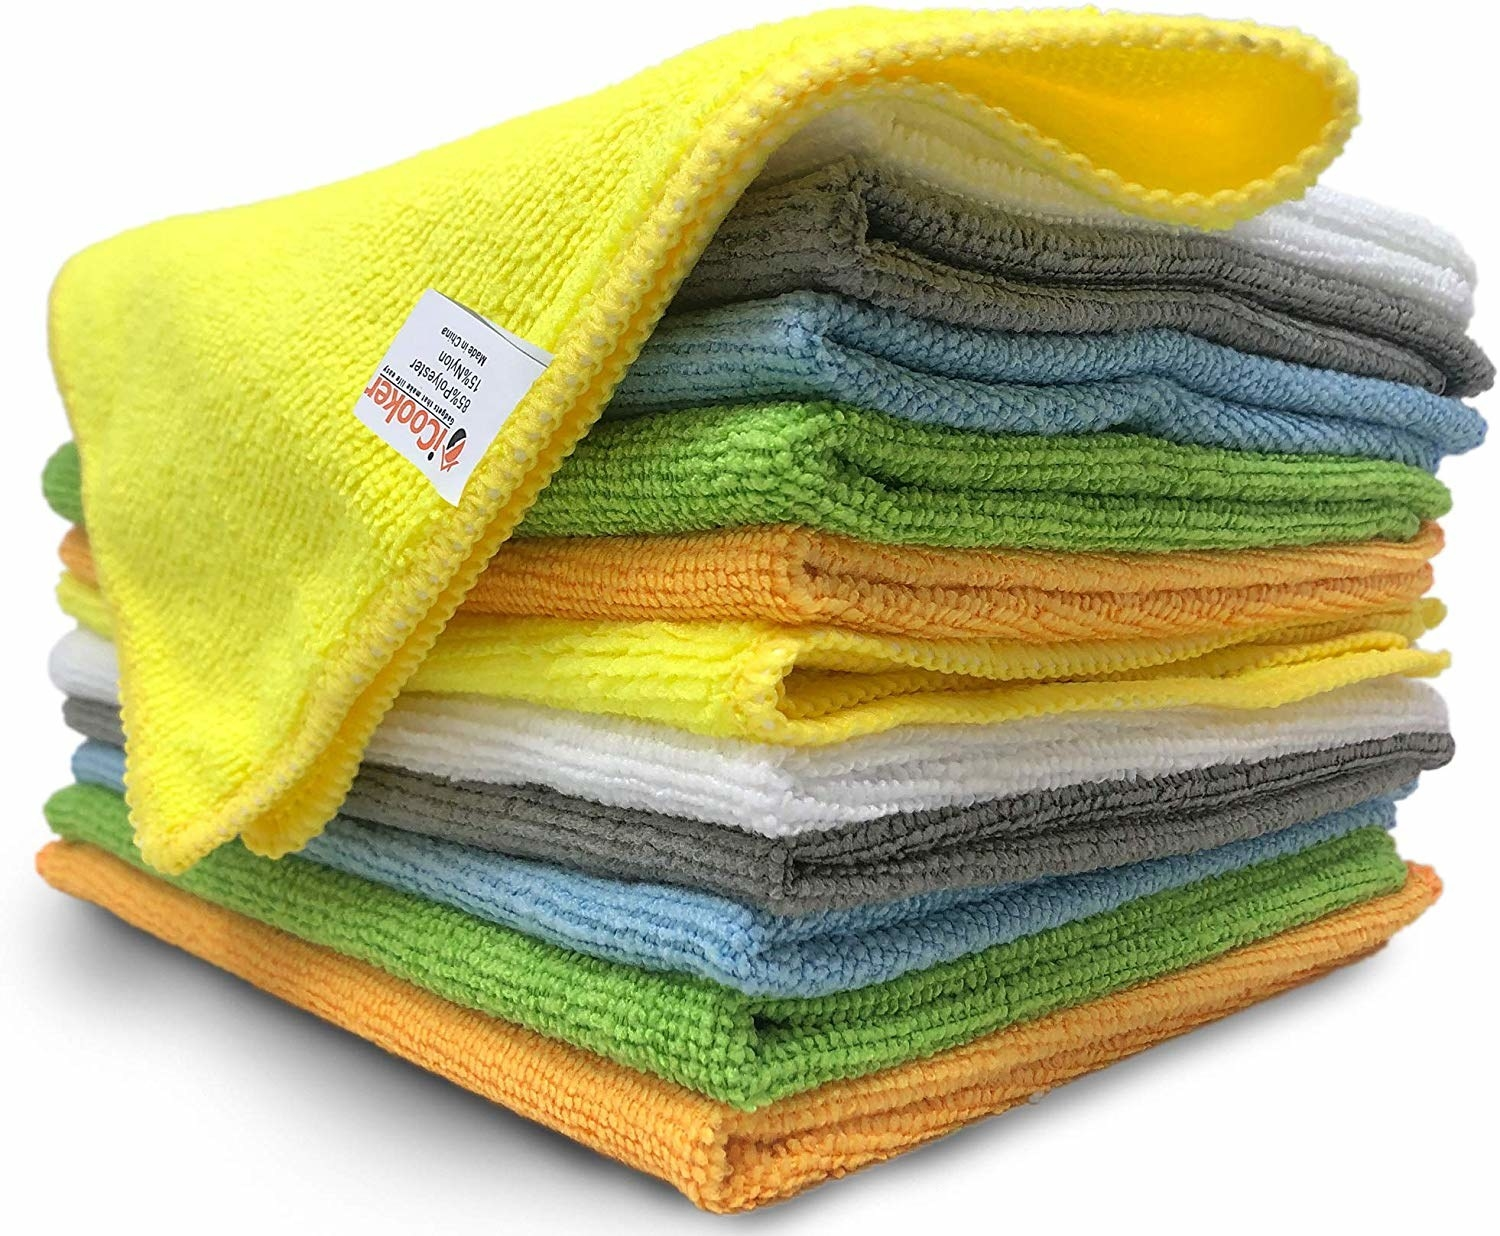 stack of folded, different colored microfiber cloths